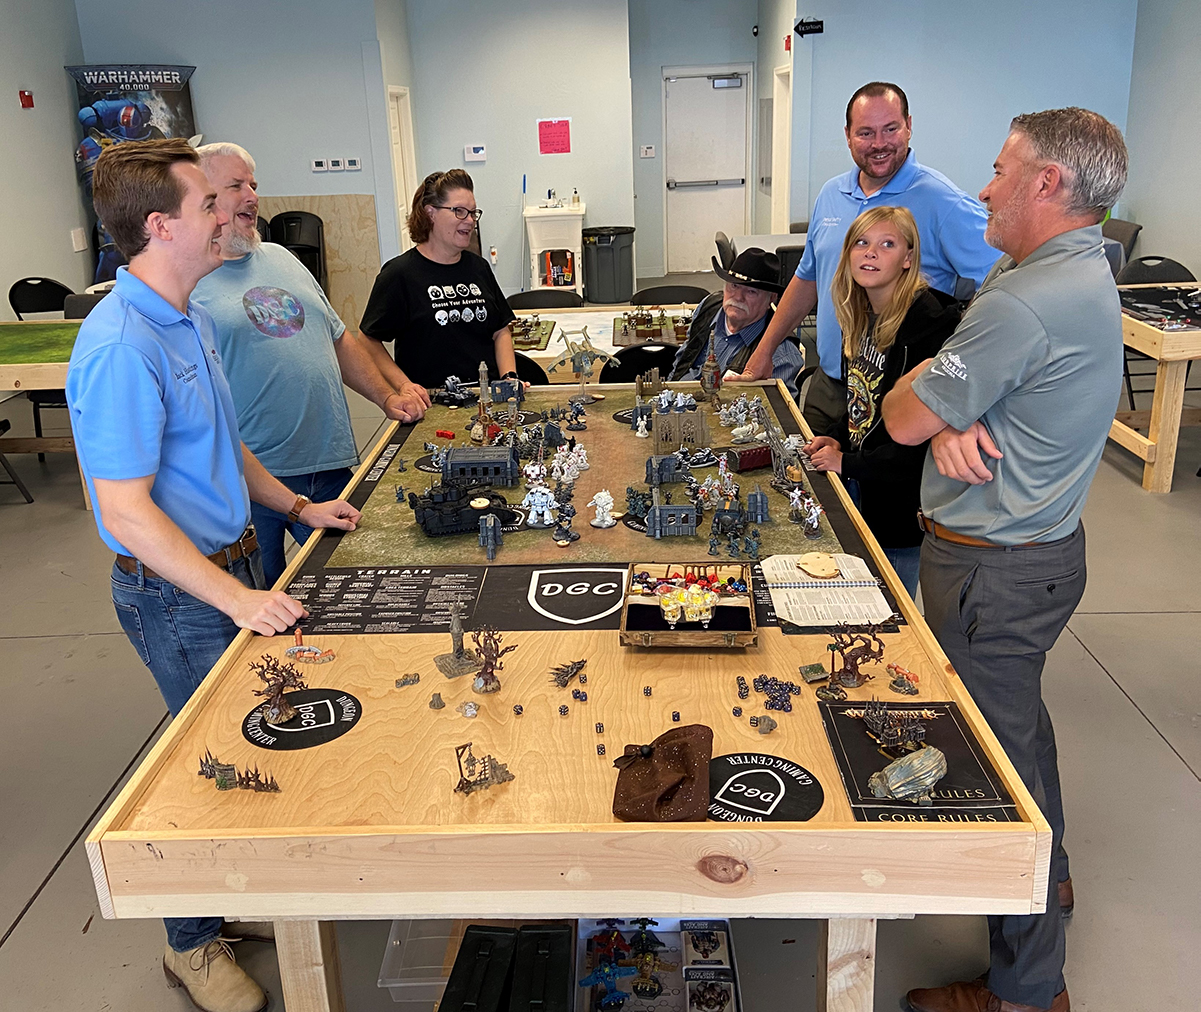 Councilmember Hastings, Councilmember Judd, Vice Mayor Duffy, and Councilmember Winters stand around a Dungeon Gaming Center table.